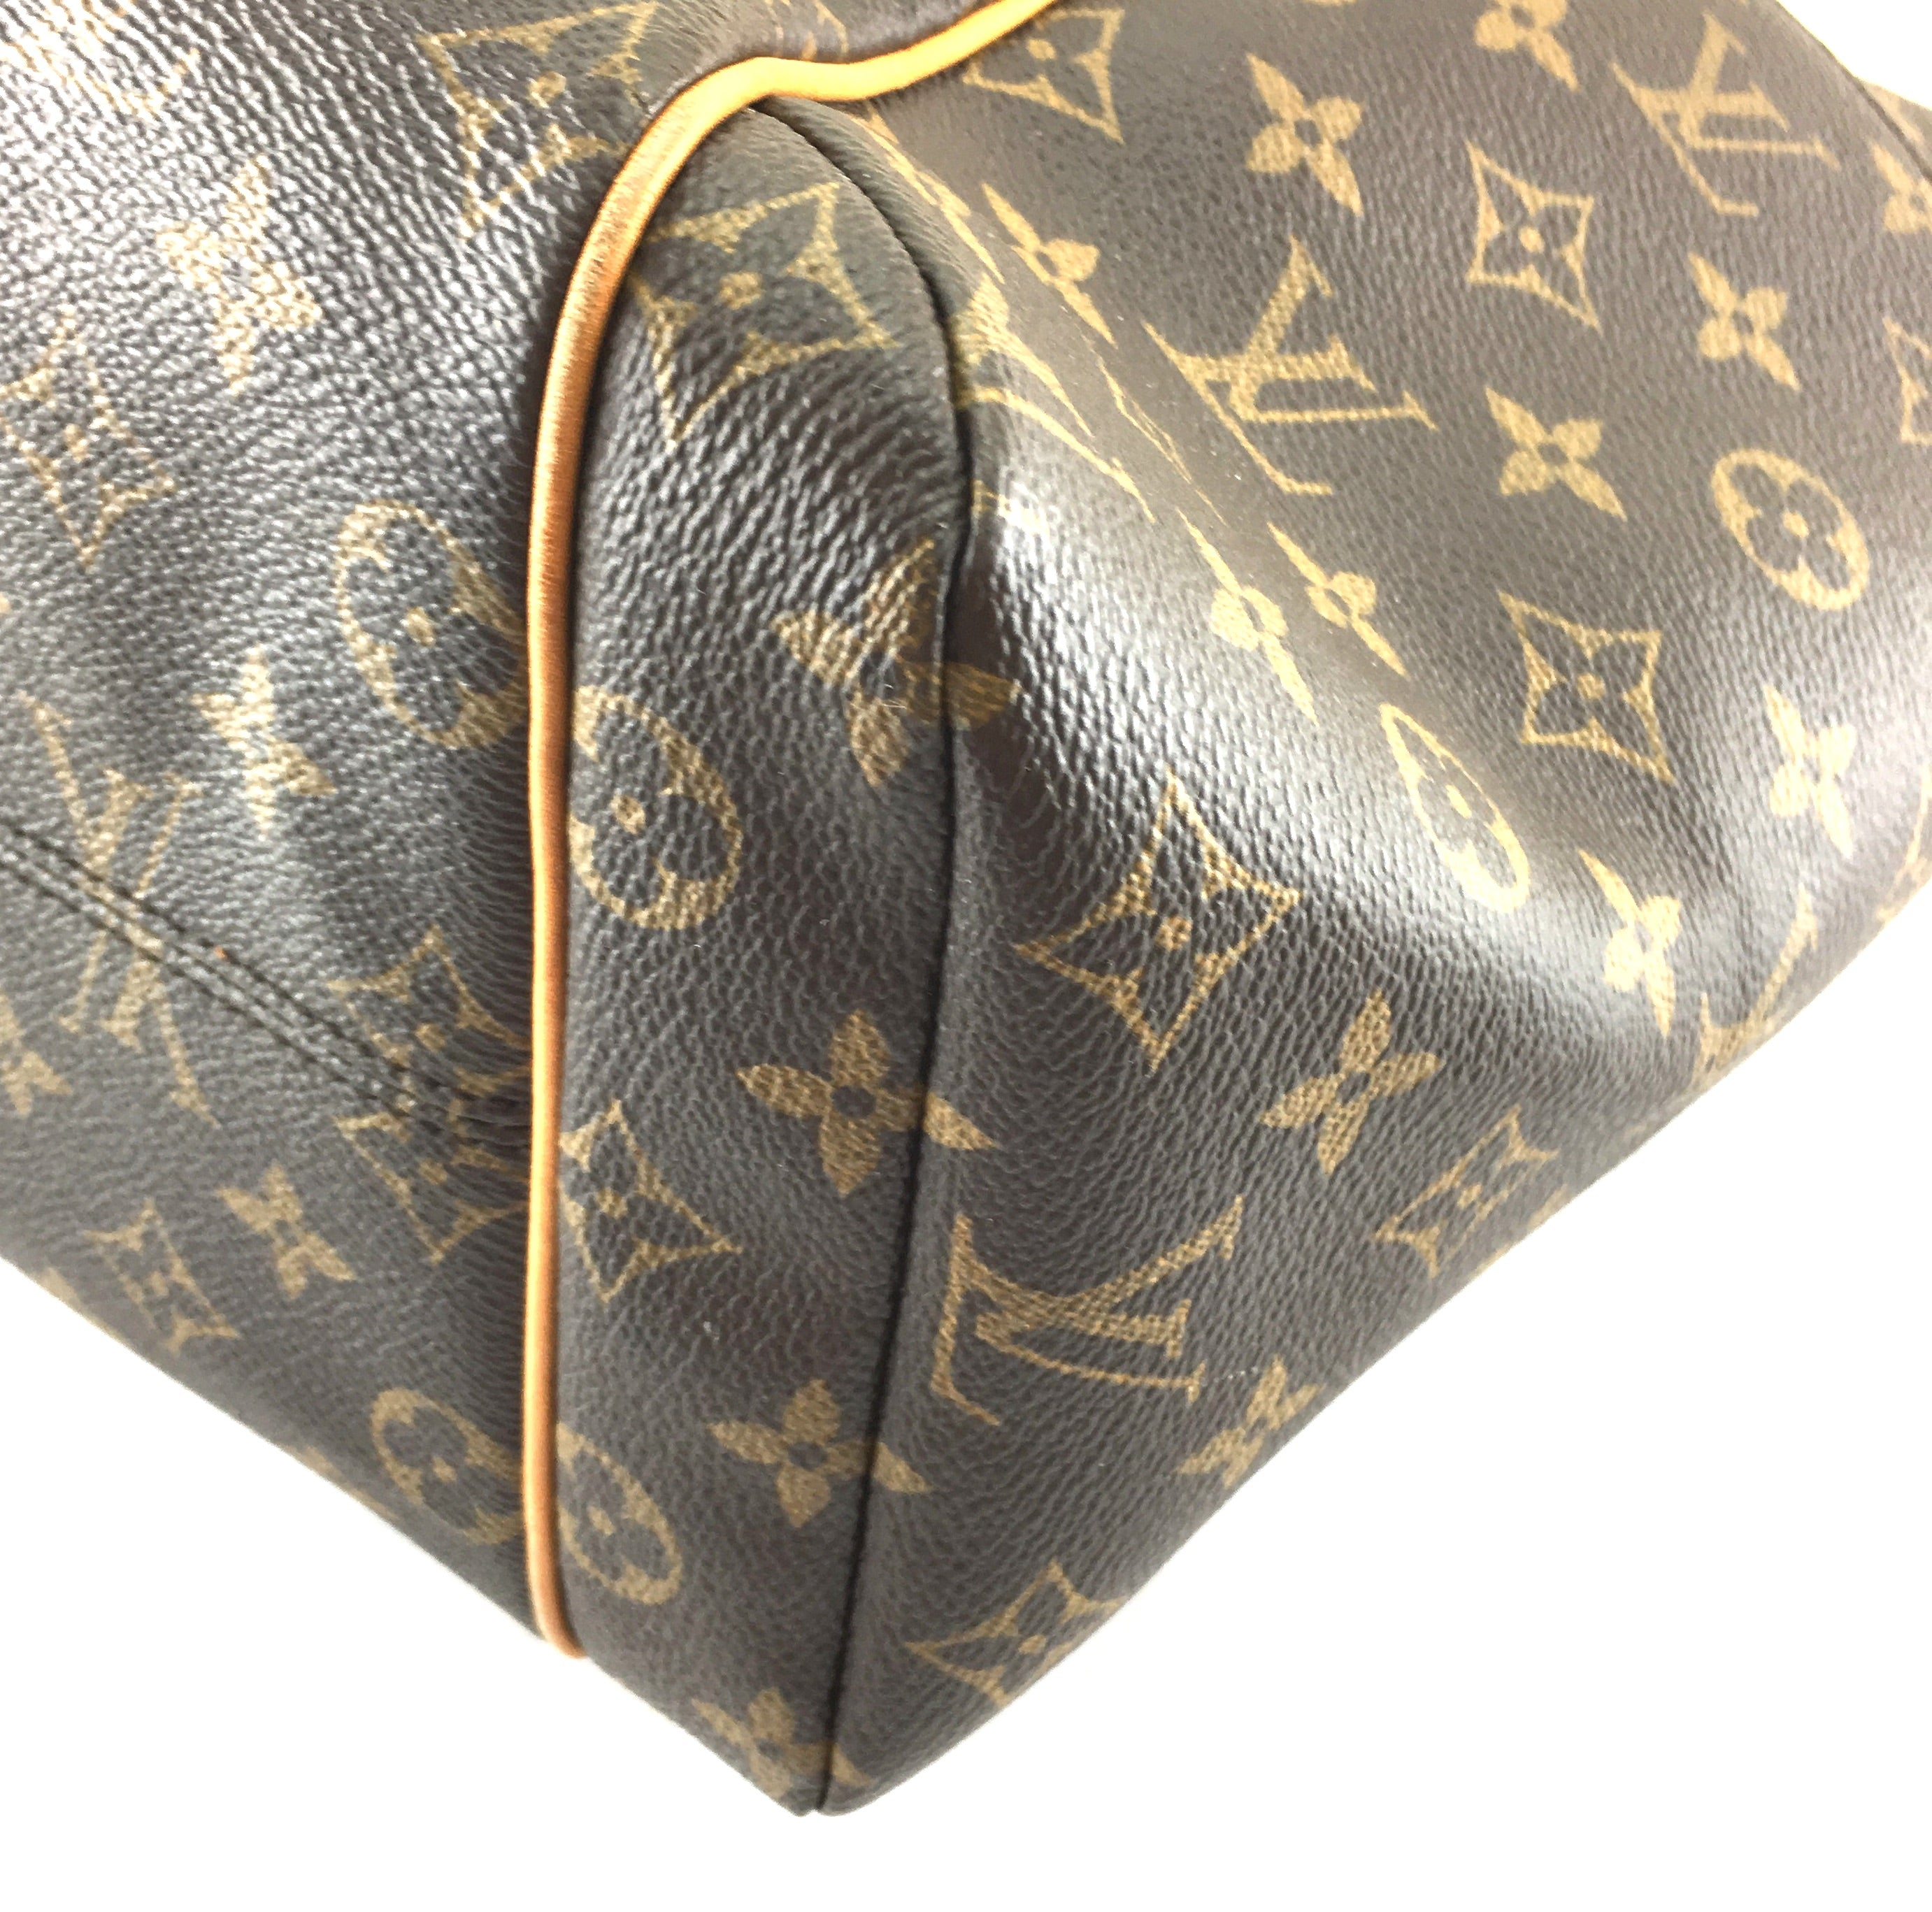 Louis Vuitton Monogram Totally Mm Tote